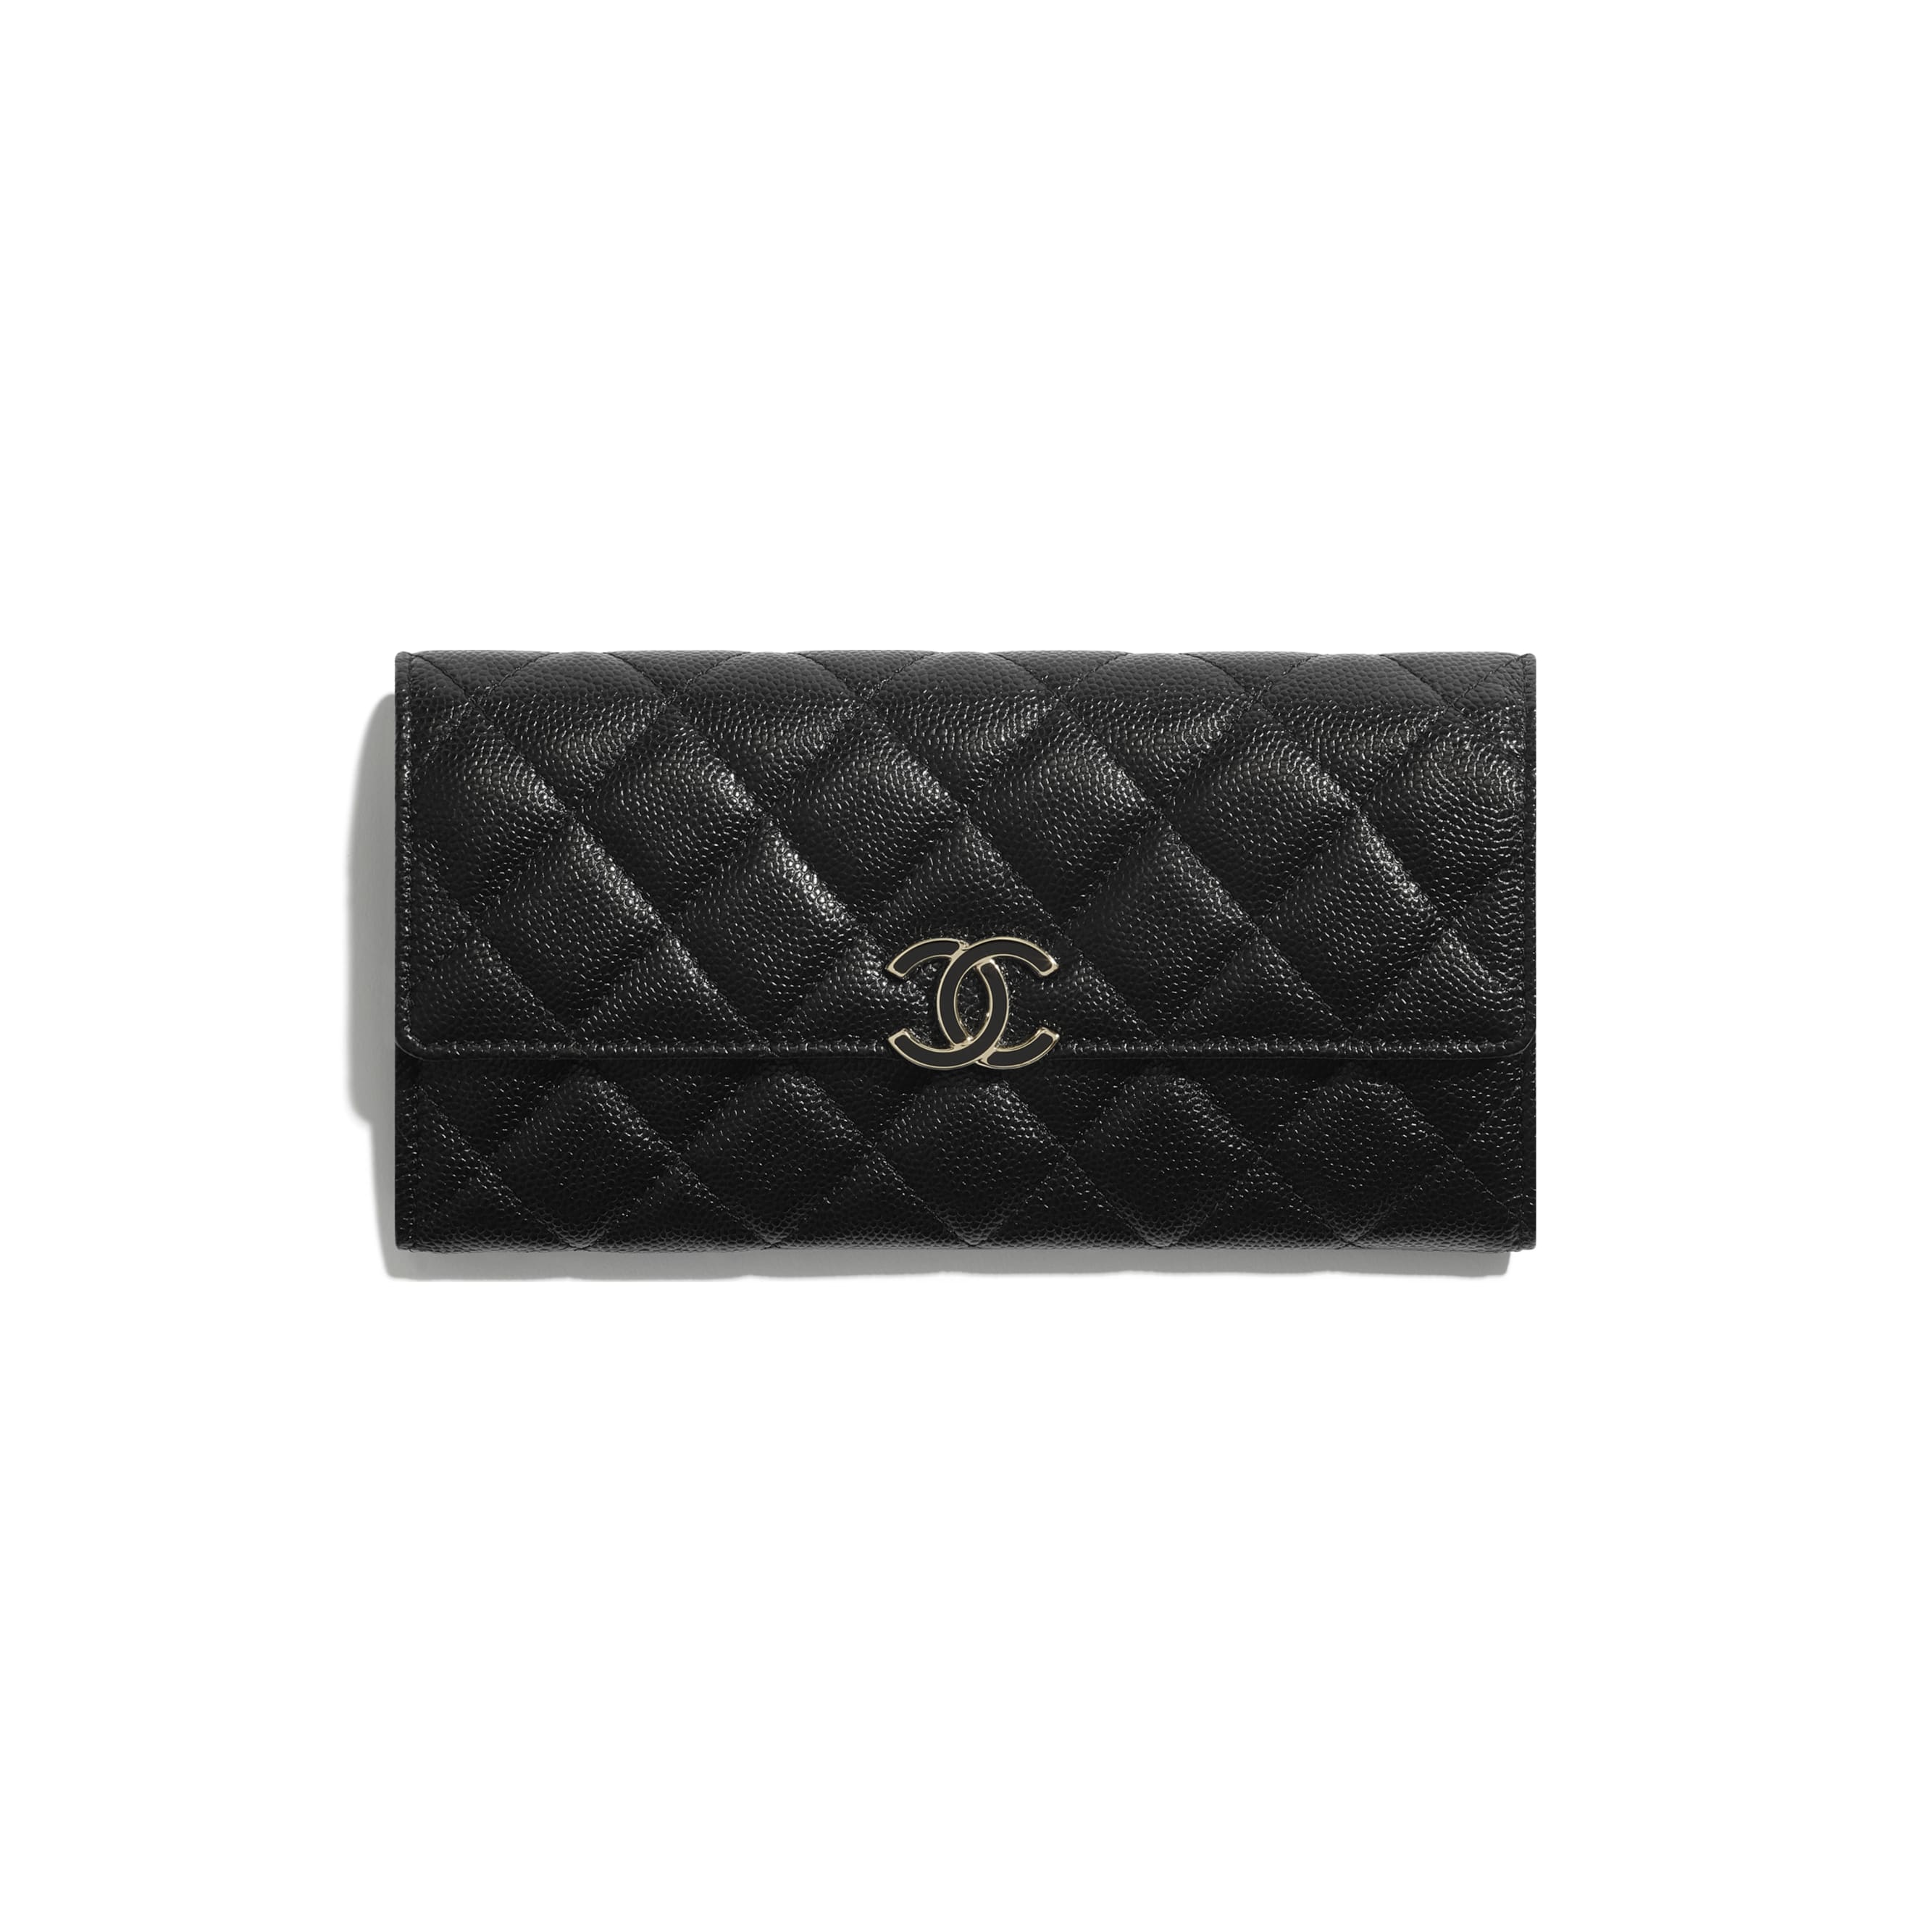 Long Flap Wallet - Black - Shiny Grained Calfskin, Gold-Tone & Lacquered Metal  - CHANEL - Default view - see standard sized version